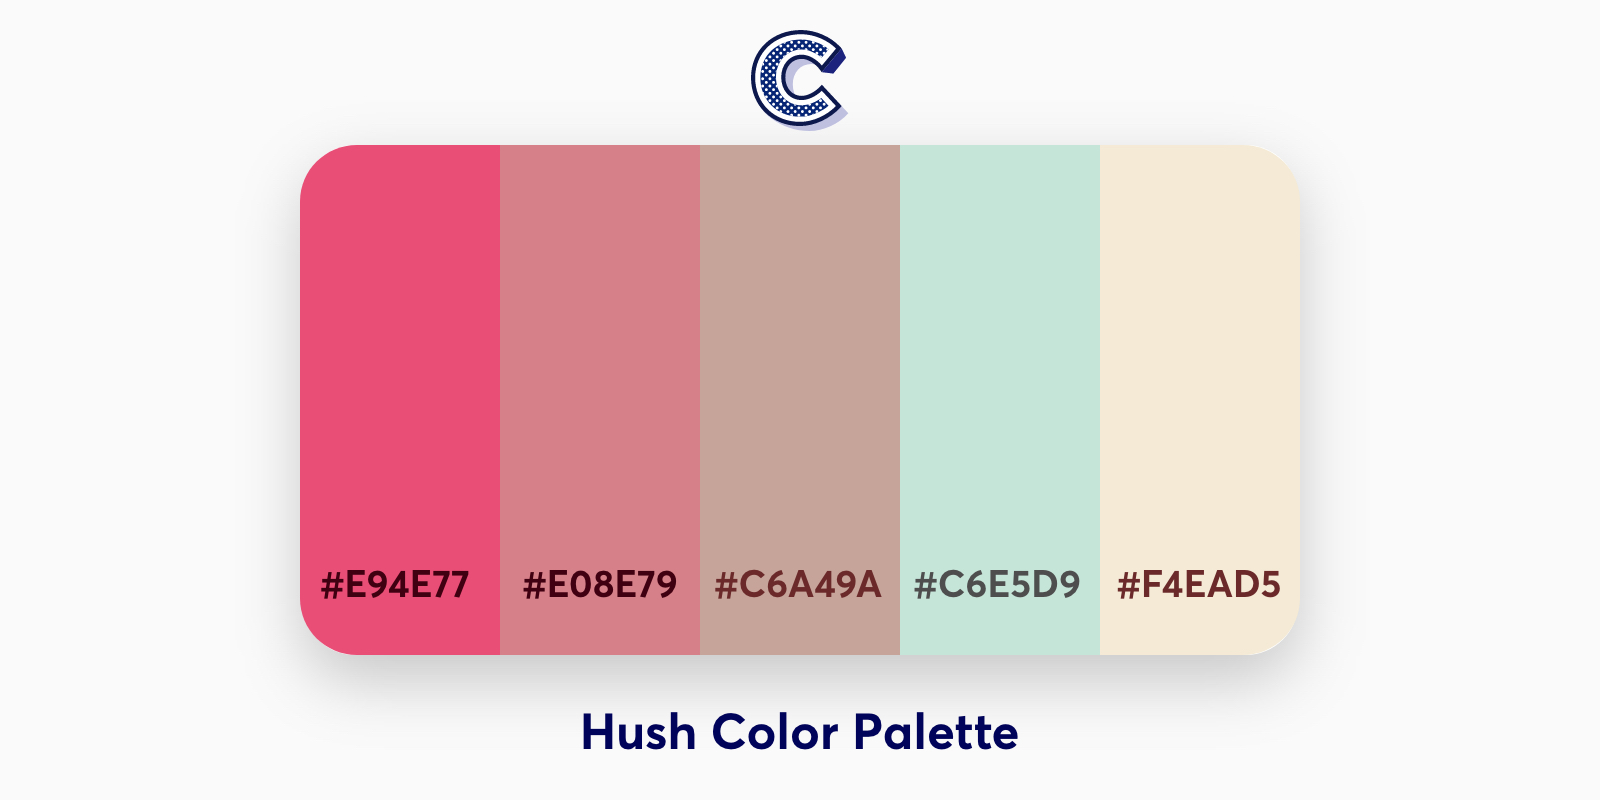 the featured image of hush color palette